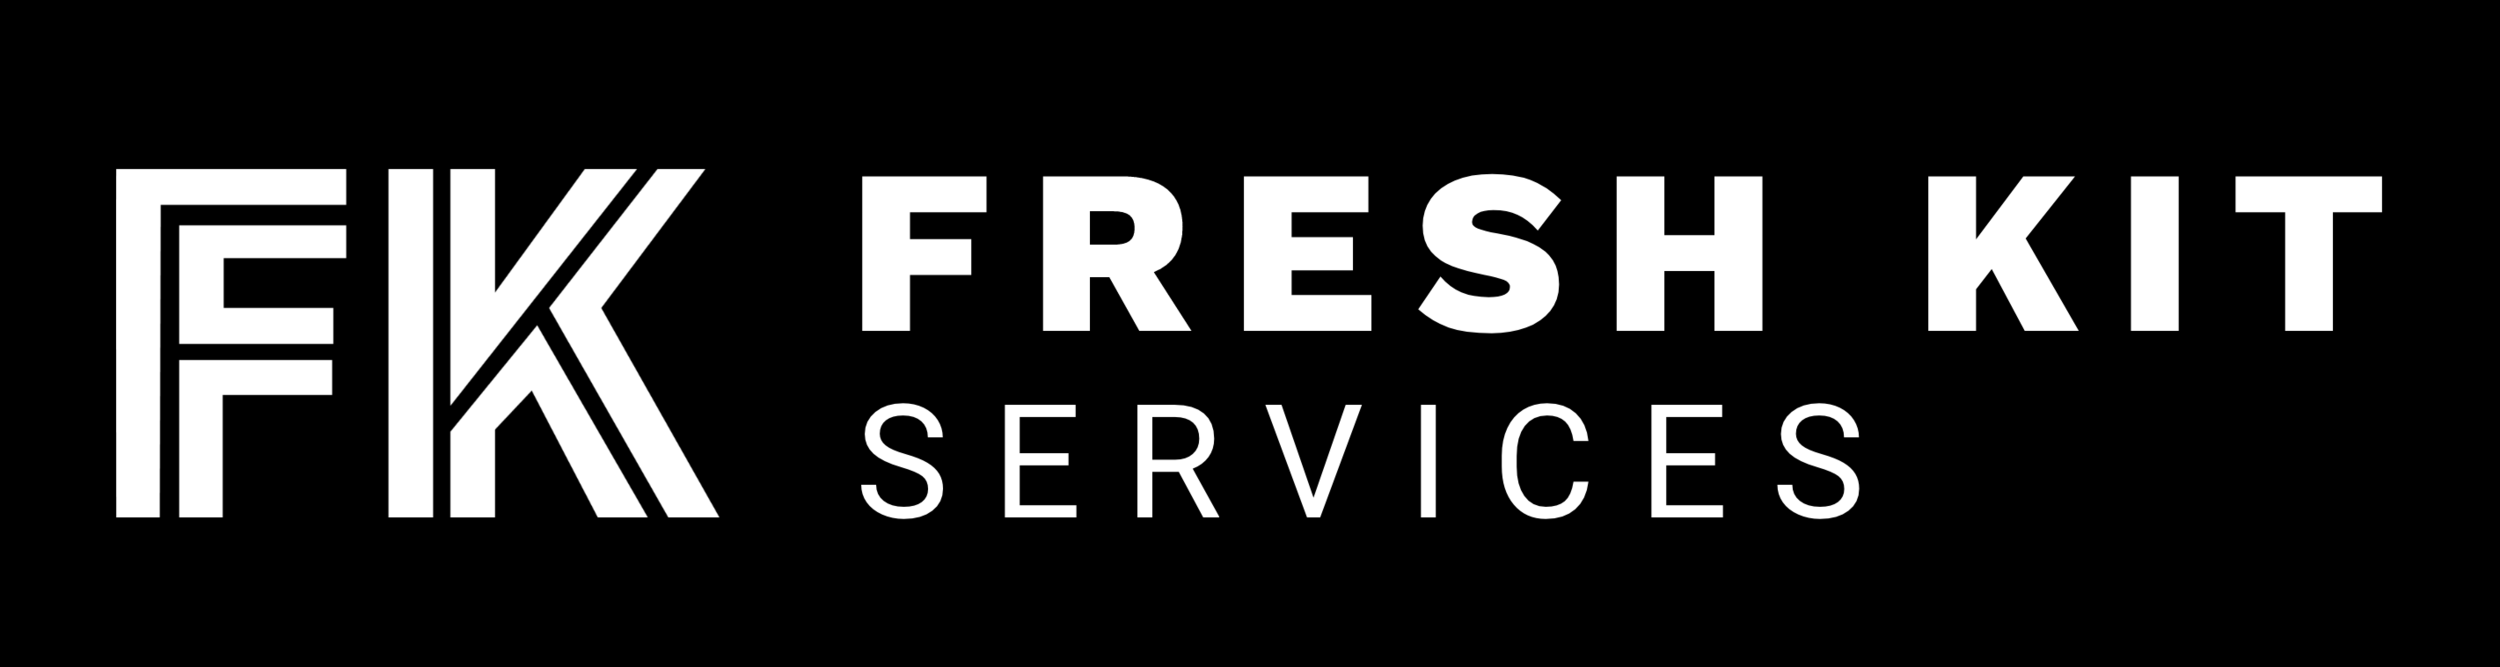 Fresh Kit - Services white logo